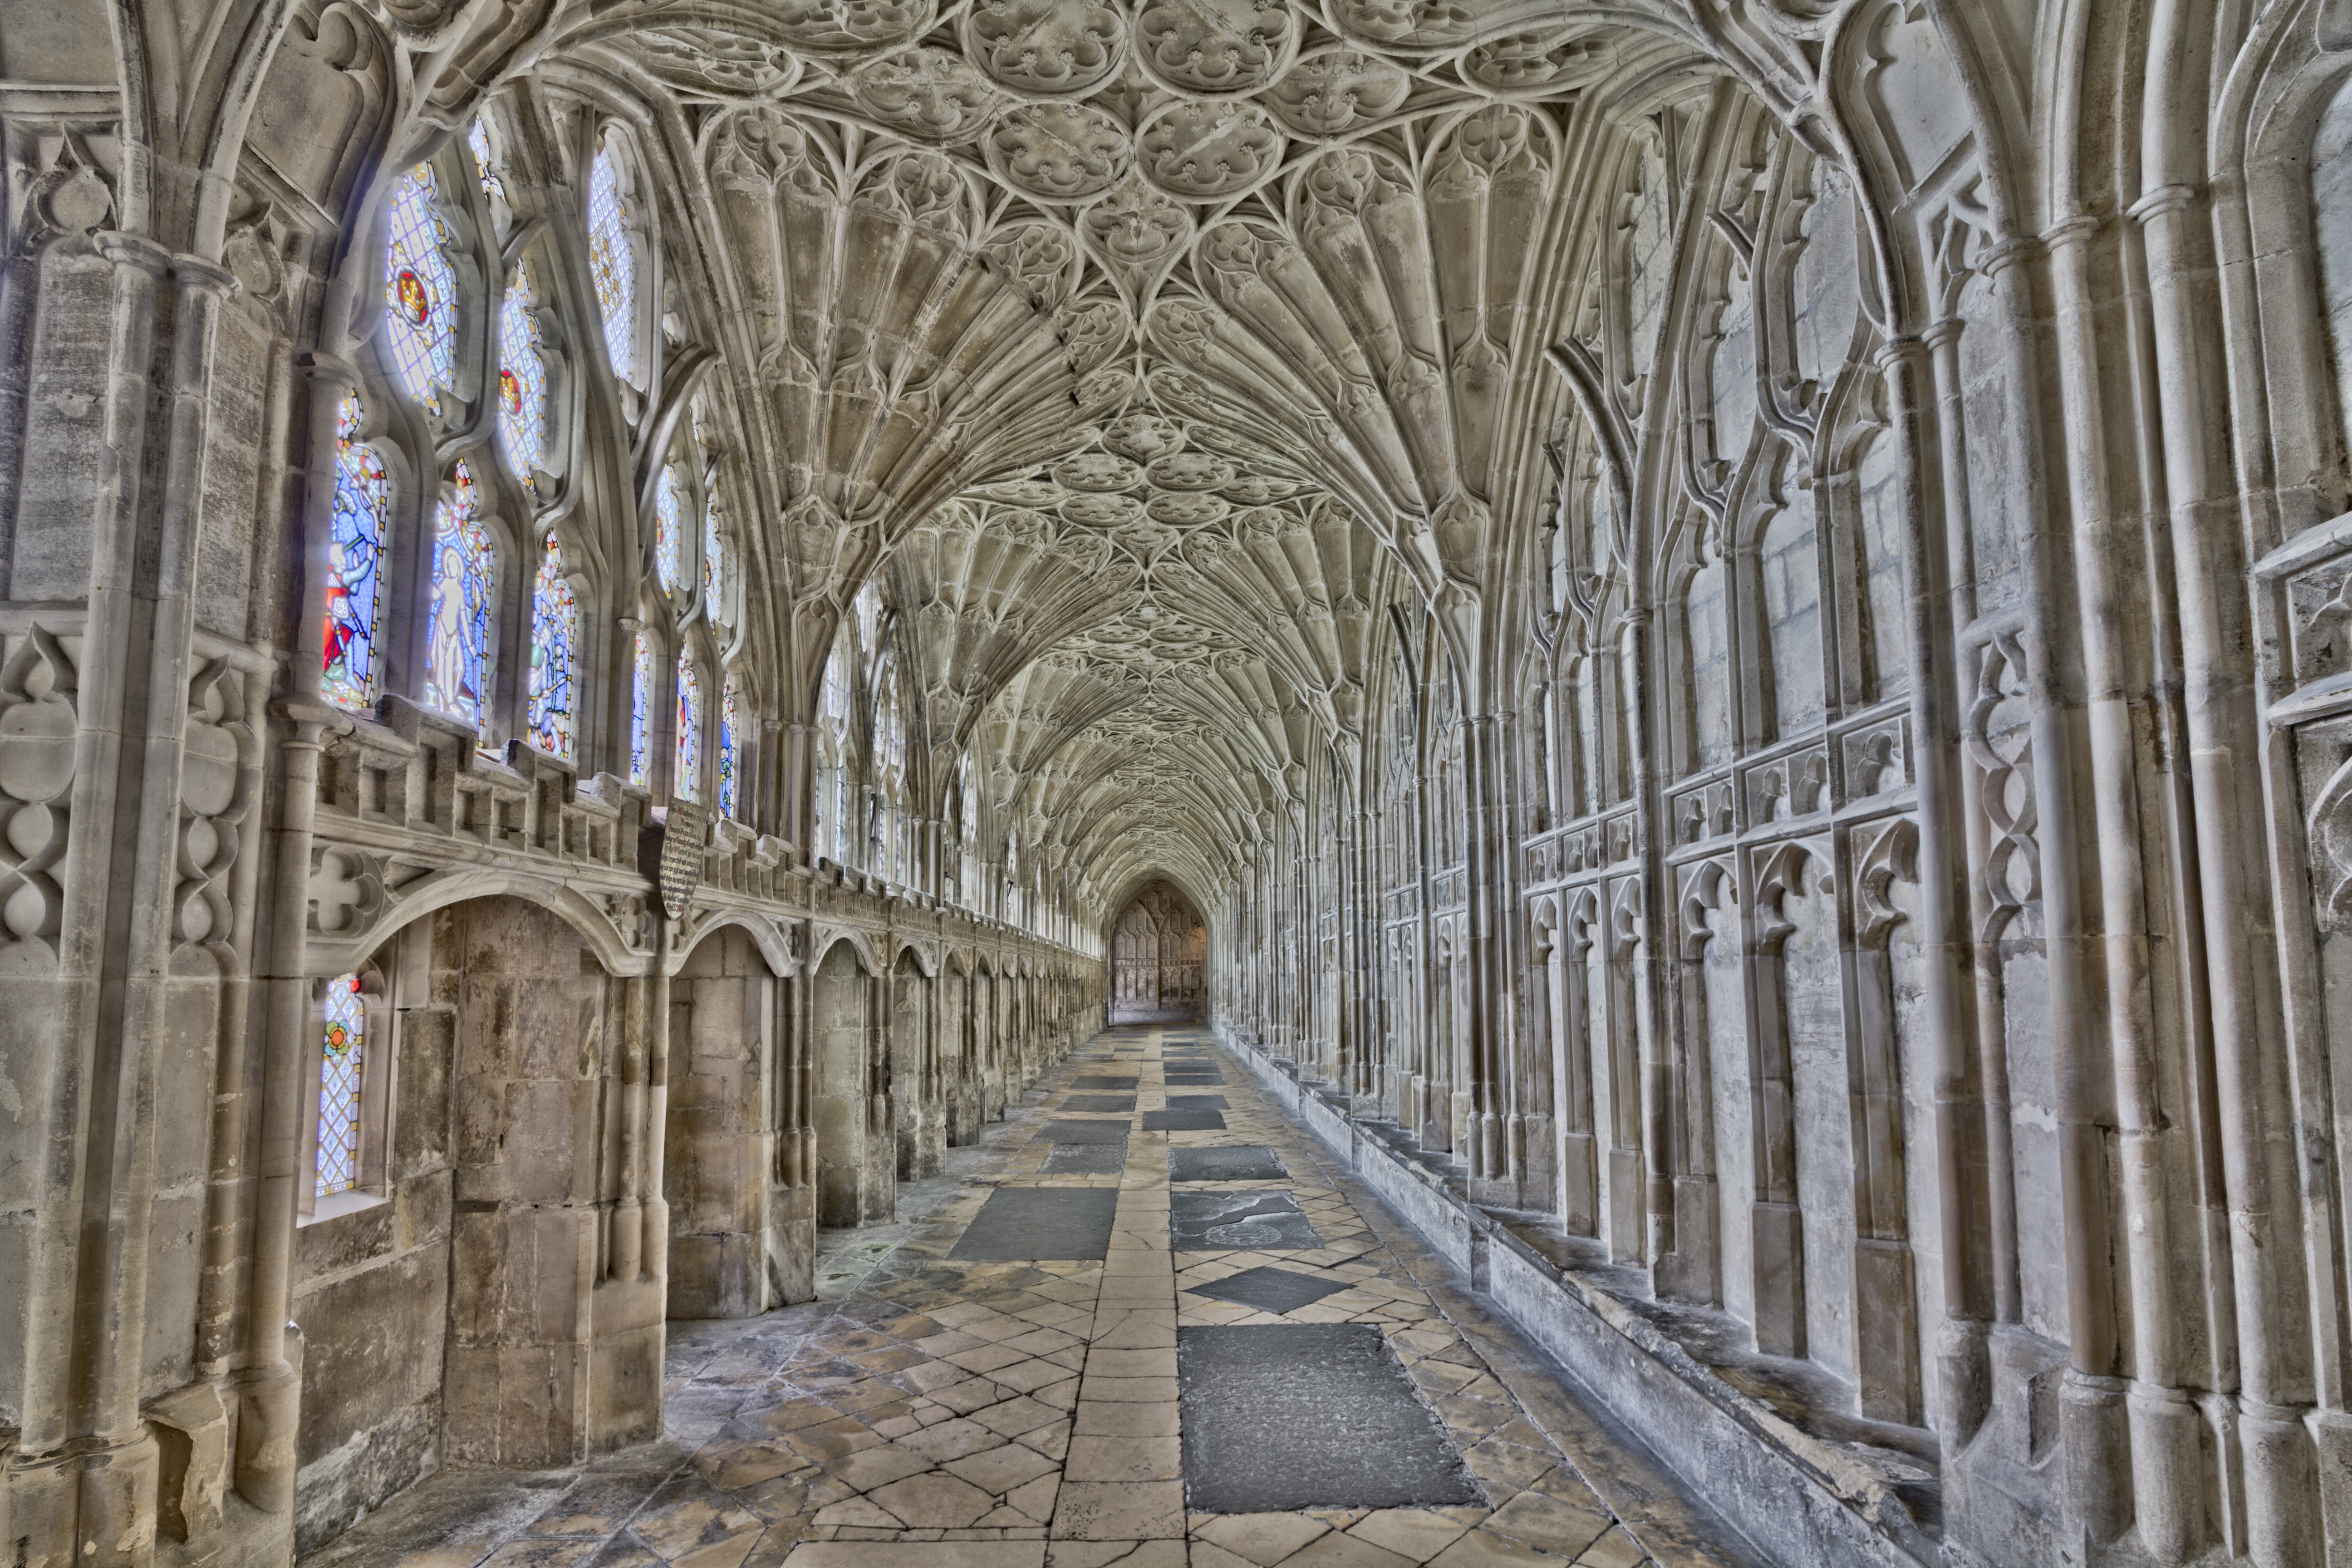 File:Gloucester Cathedral Cloister (12643682743).jpg - Wikimedia Commons